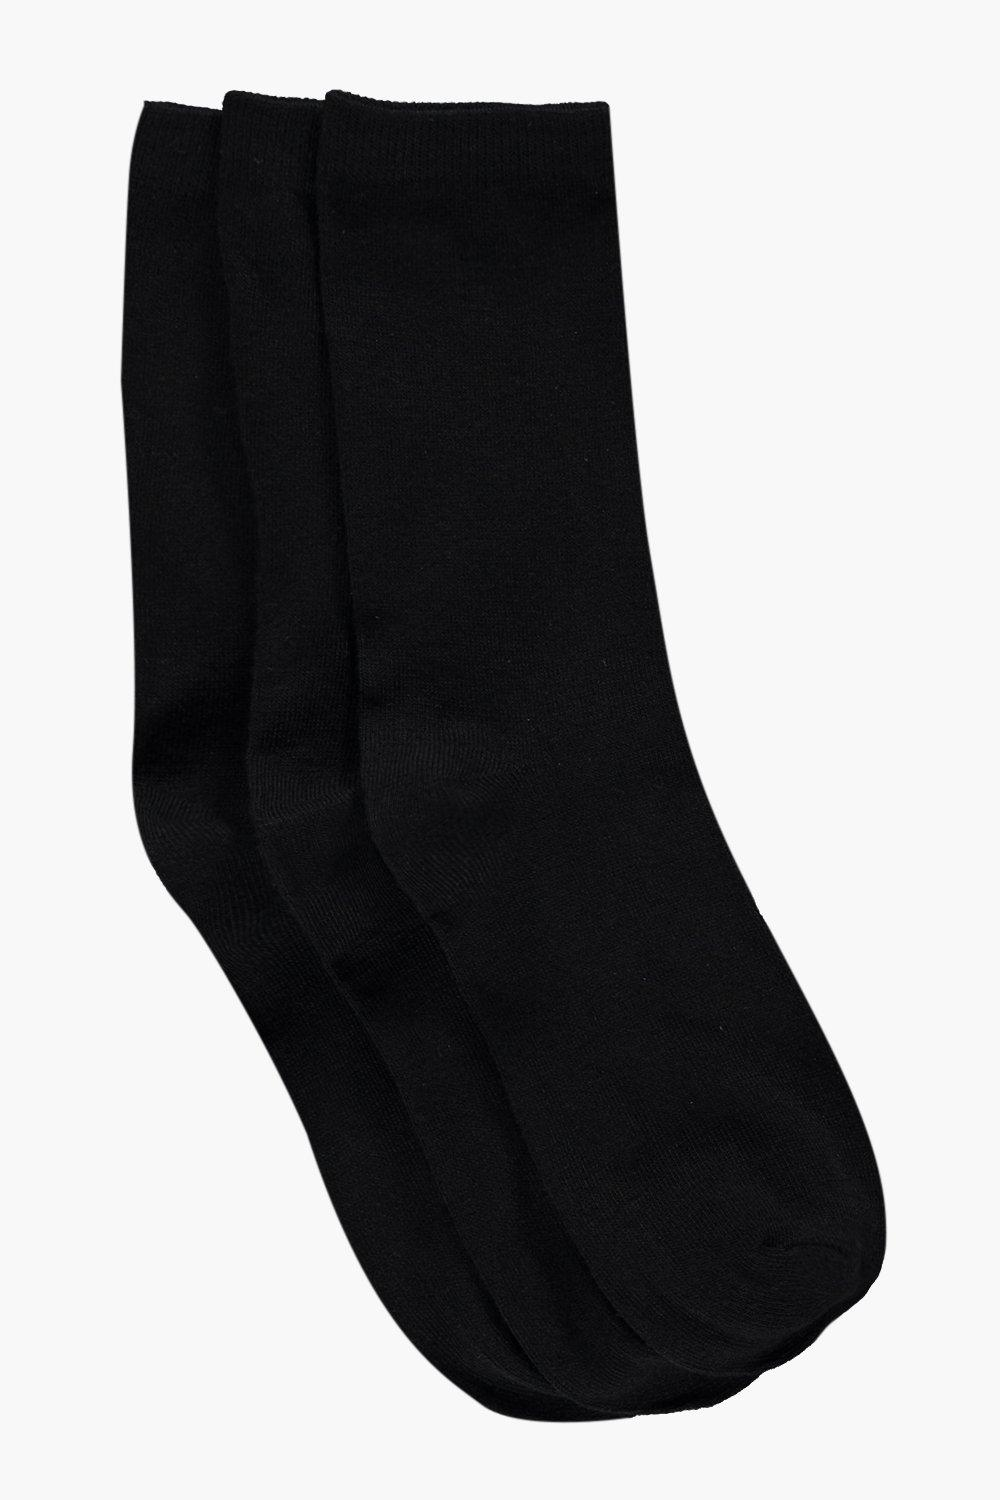 Keira Plain 3 Pack Ankle Socks